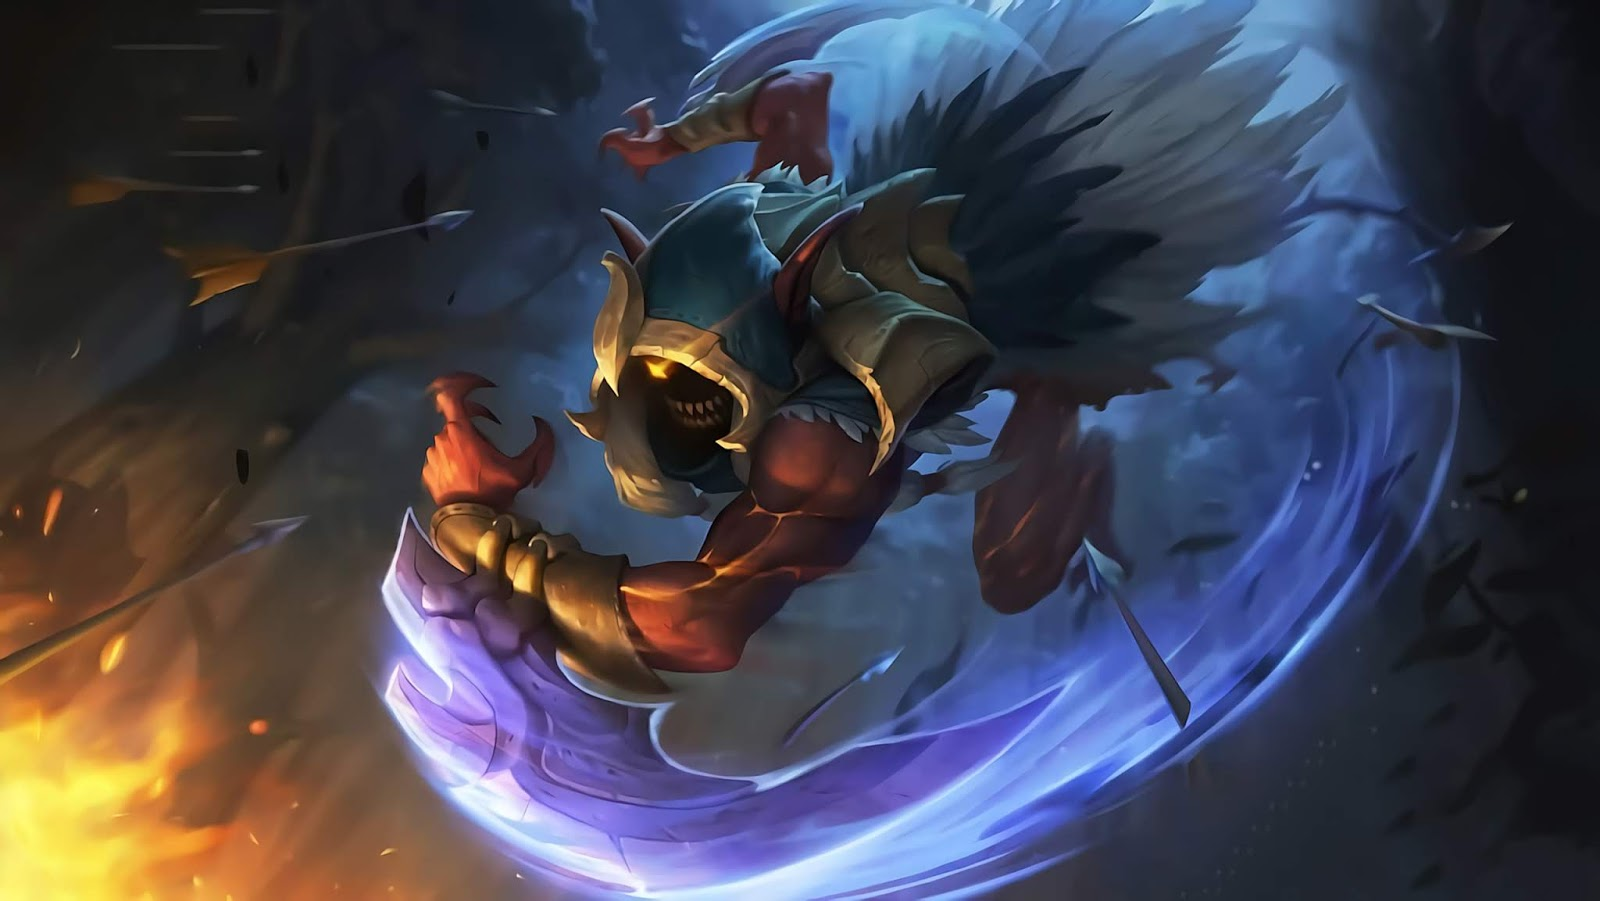 Wallpaper Helcurt Exoracial Executer Skin Mobile Legends HD for PC